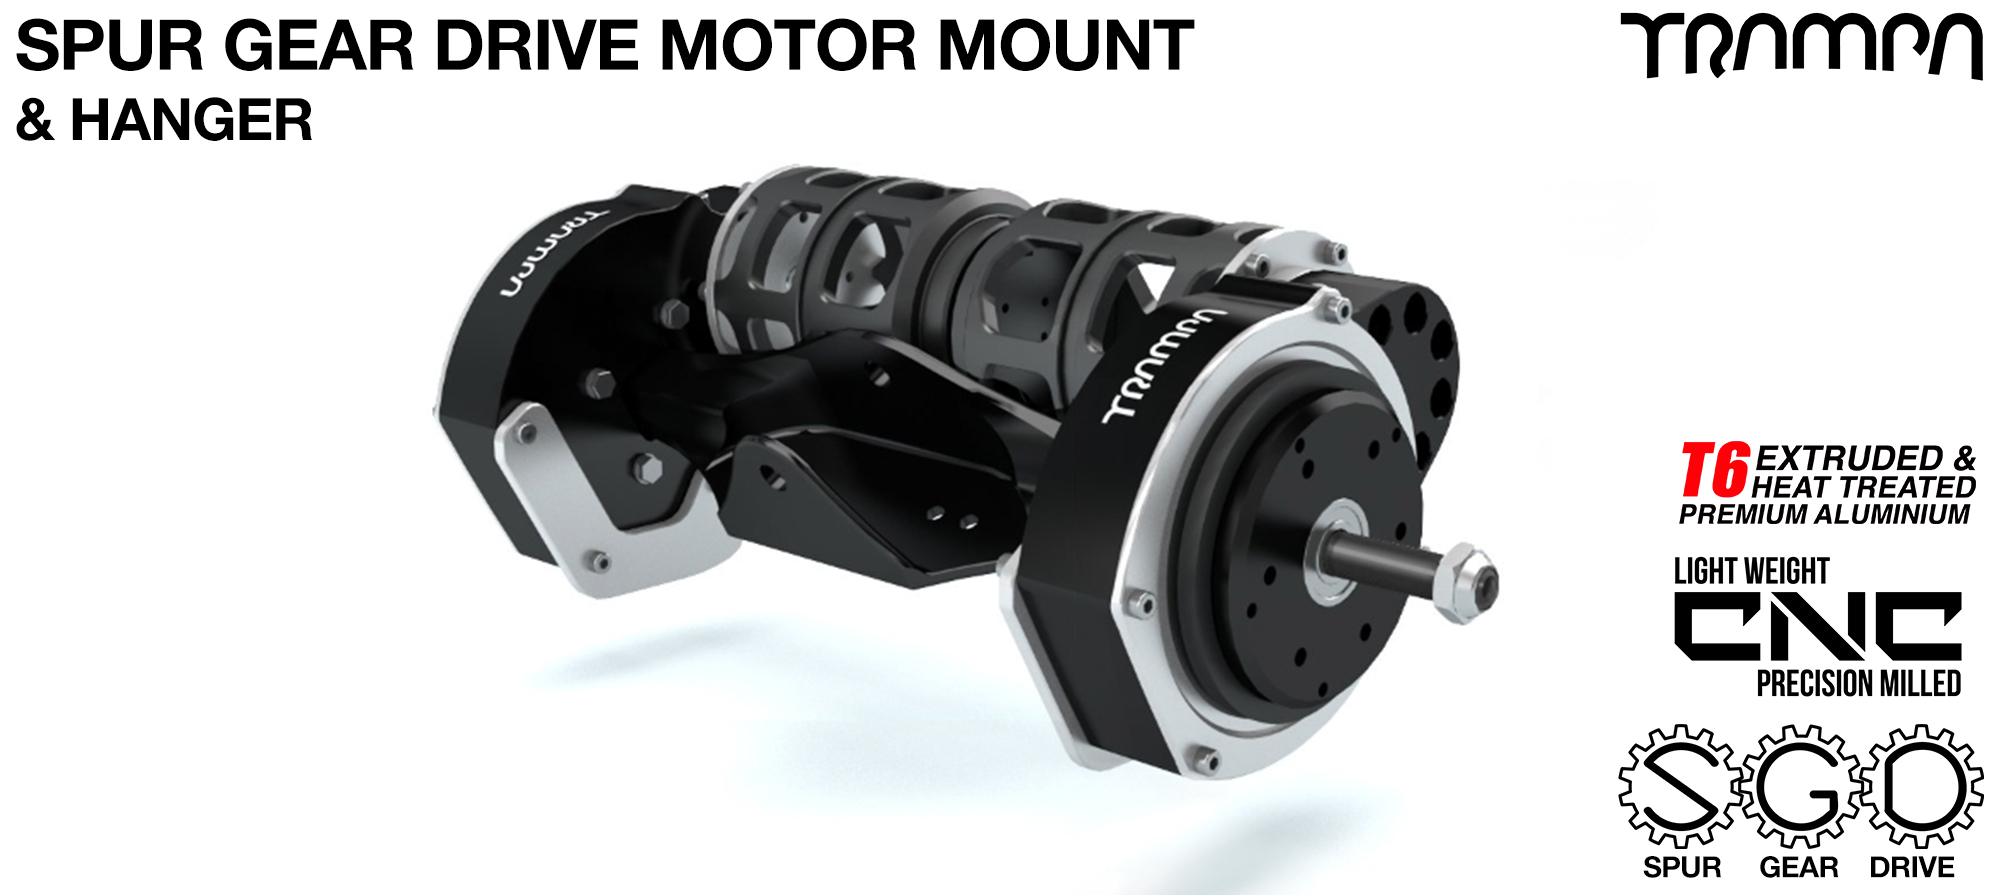 Mountainboard Spur Gear Drive TWIN Motor Mount & Hanger